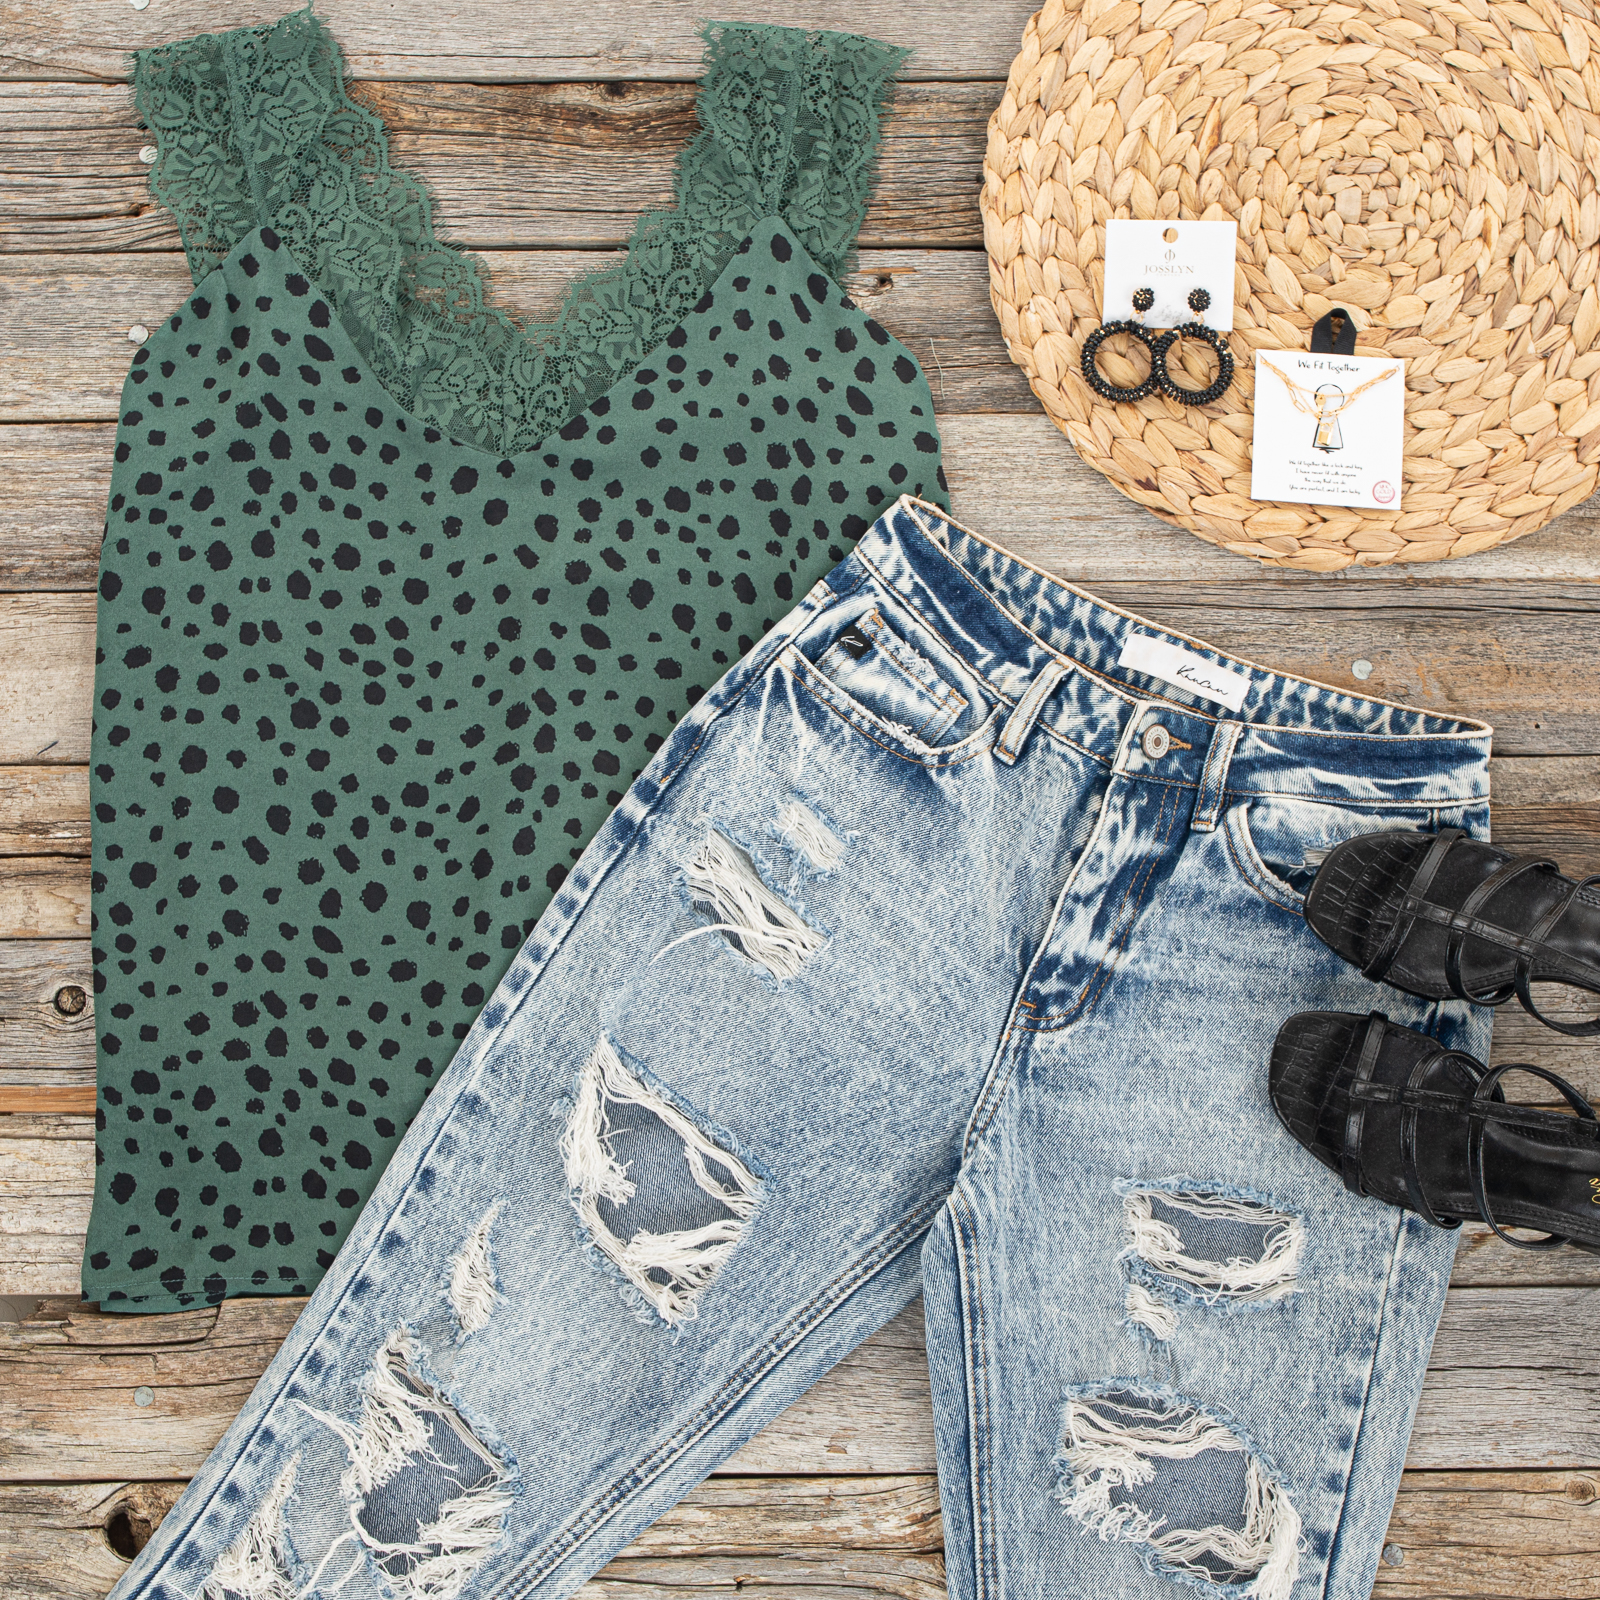 Pine Green Cheetah Print V Neck Tank Top with Lace Details